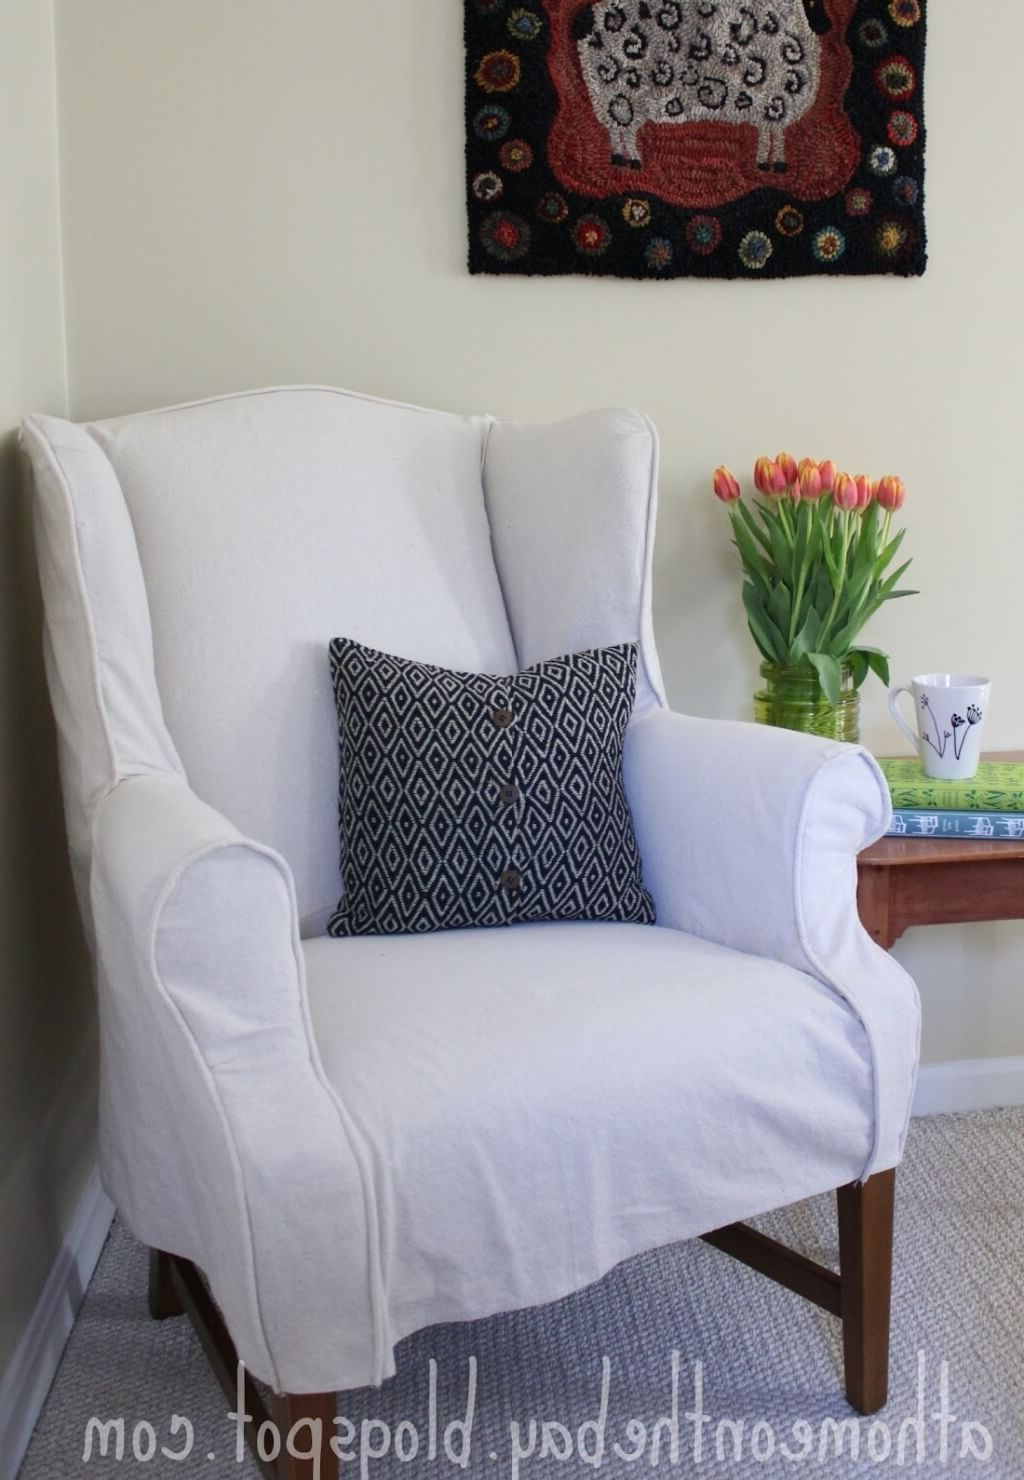 Pottery Barn Chair Slipcovers For Chairs How To Cover A Couch With With Current Sofa And Chair Slipcovers (View 10 of 20)